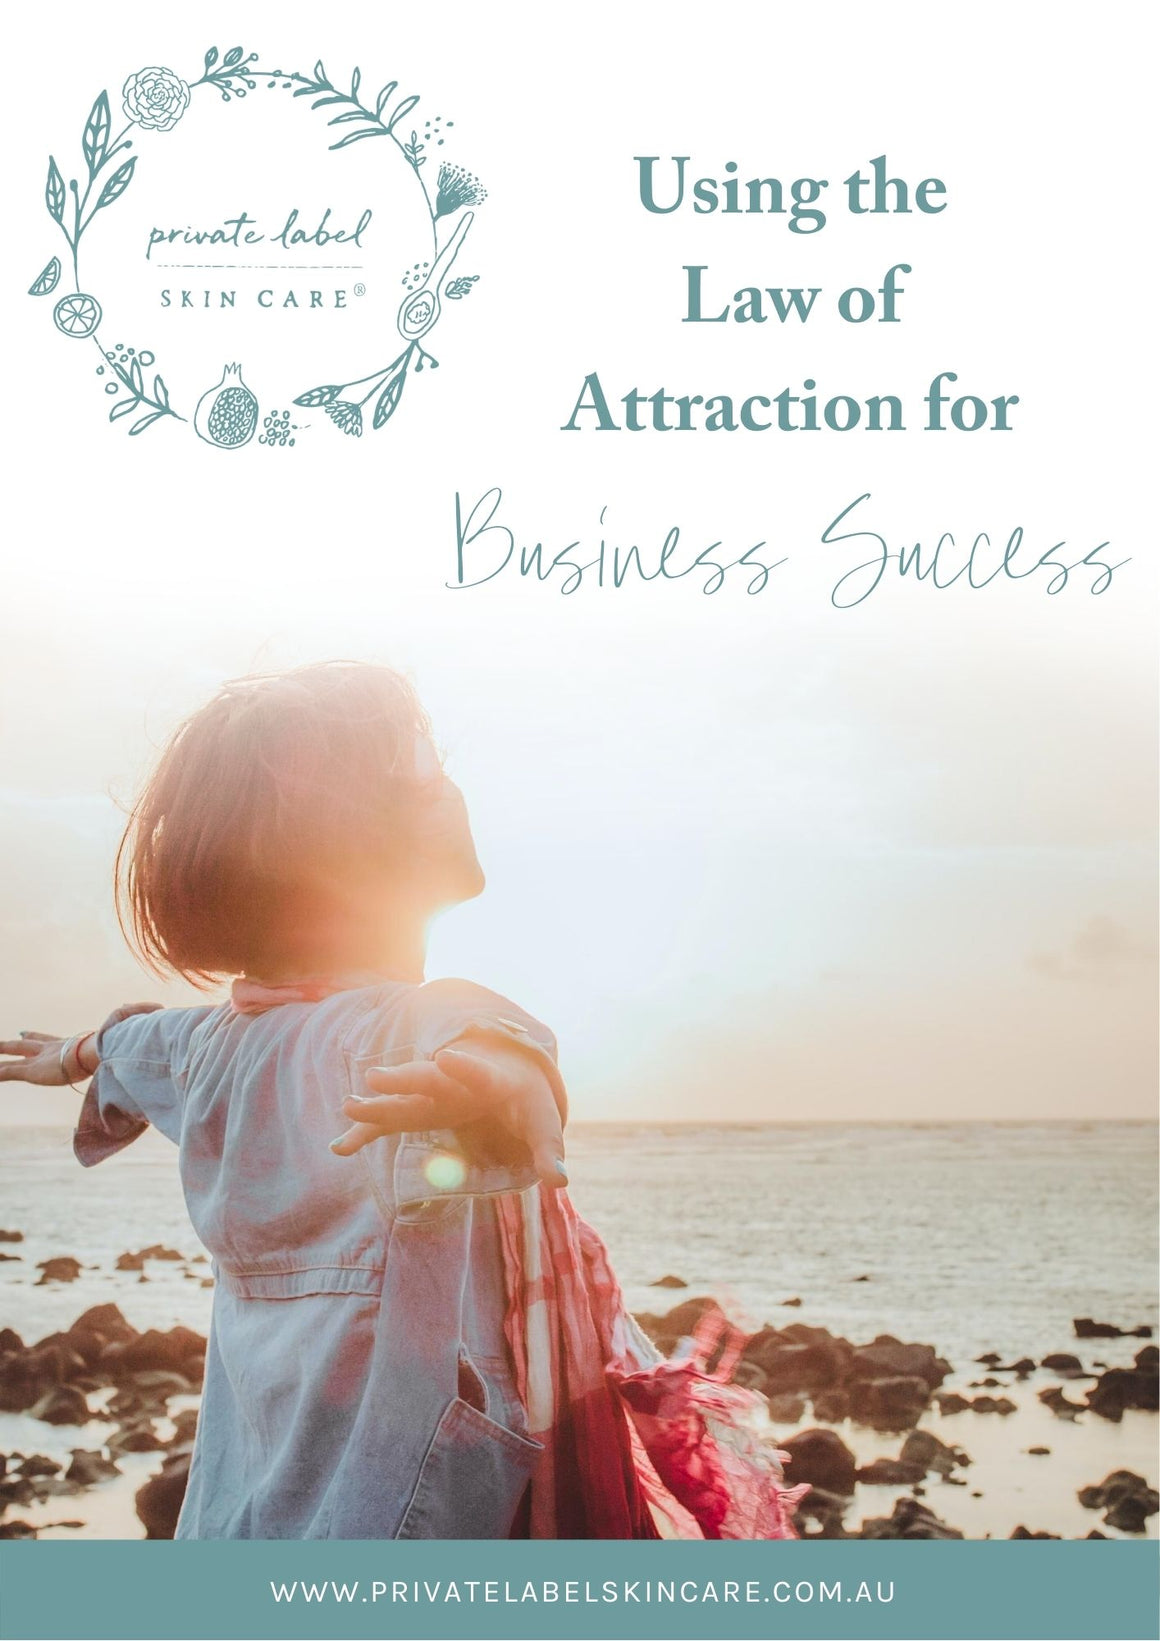 Using the Law of Attraction for Business Success